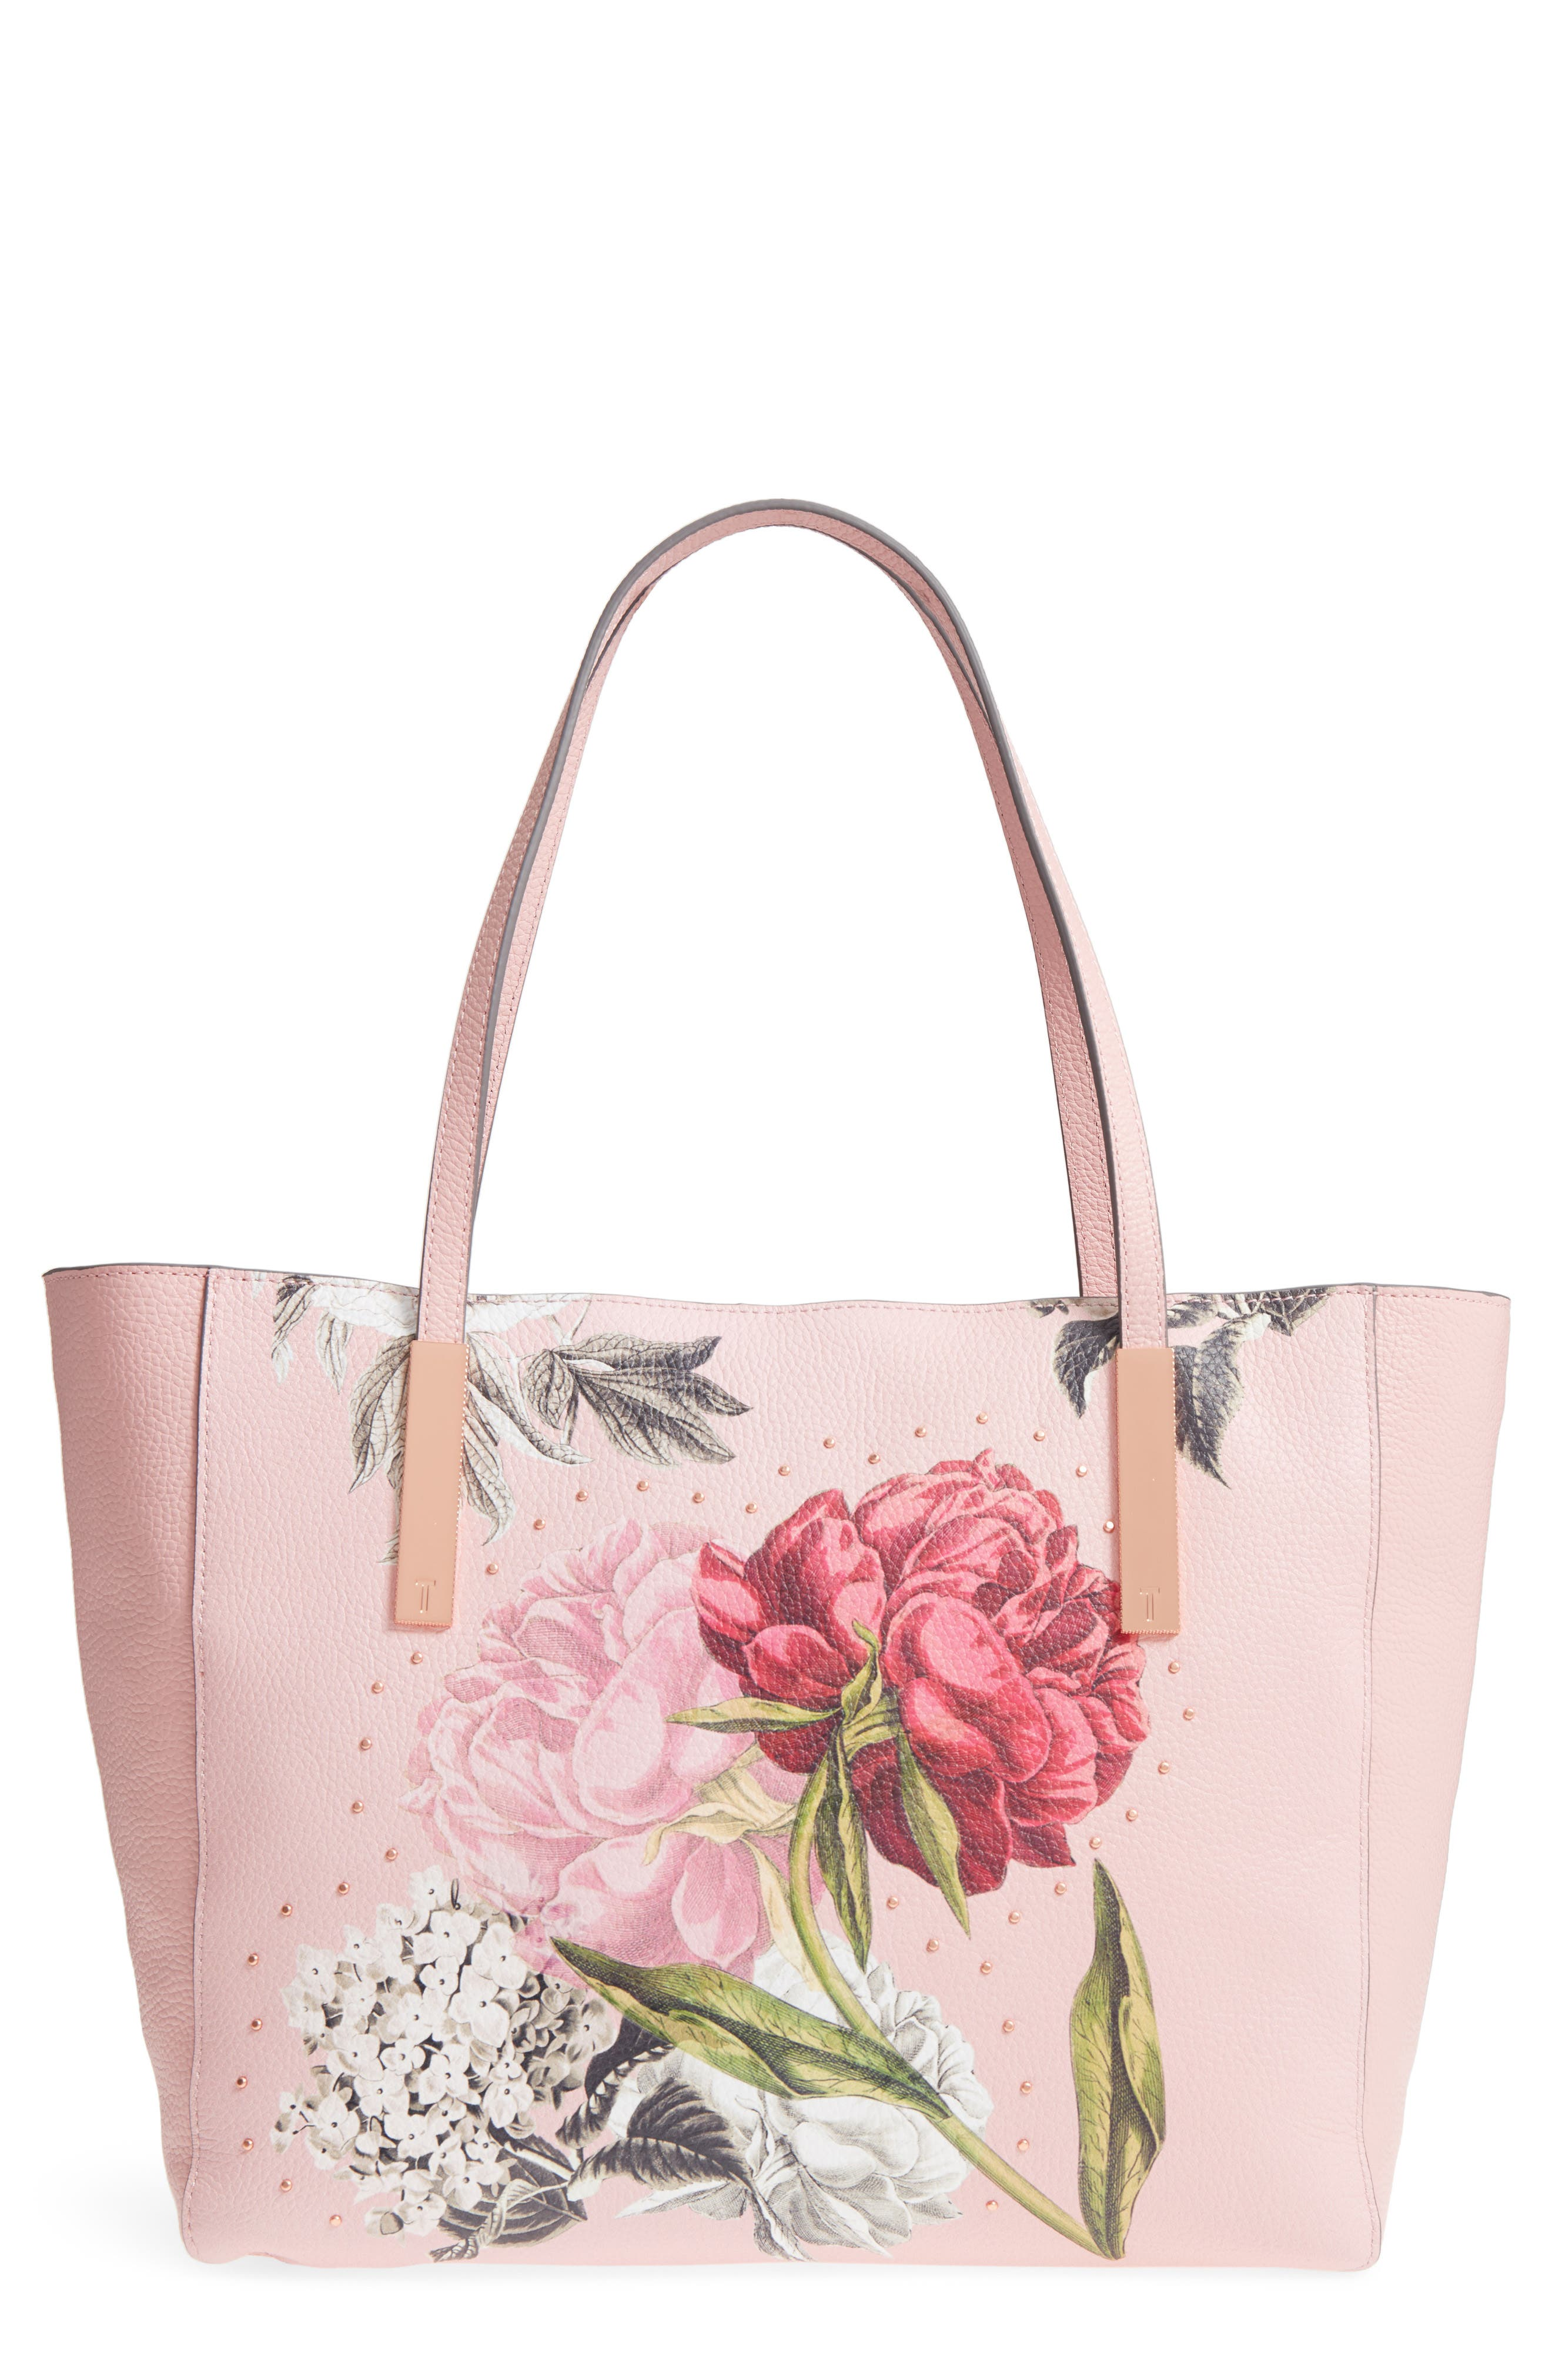 Palace Gardens Large Leather Tote,                         Main,                         color,